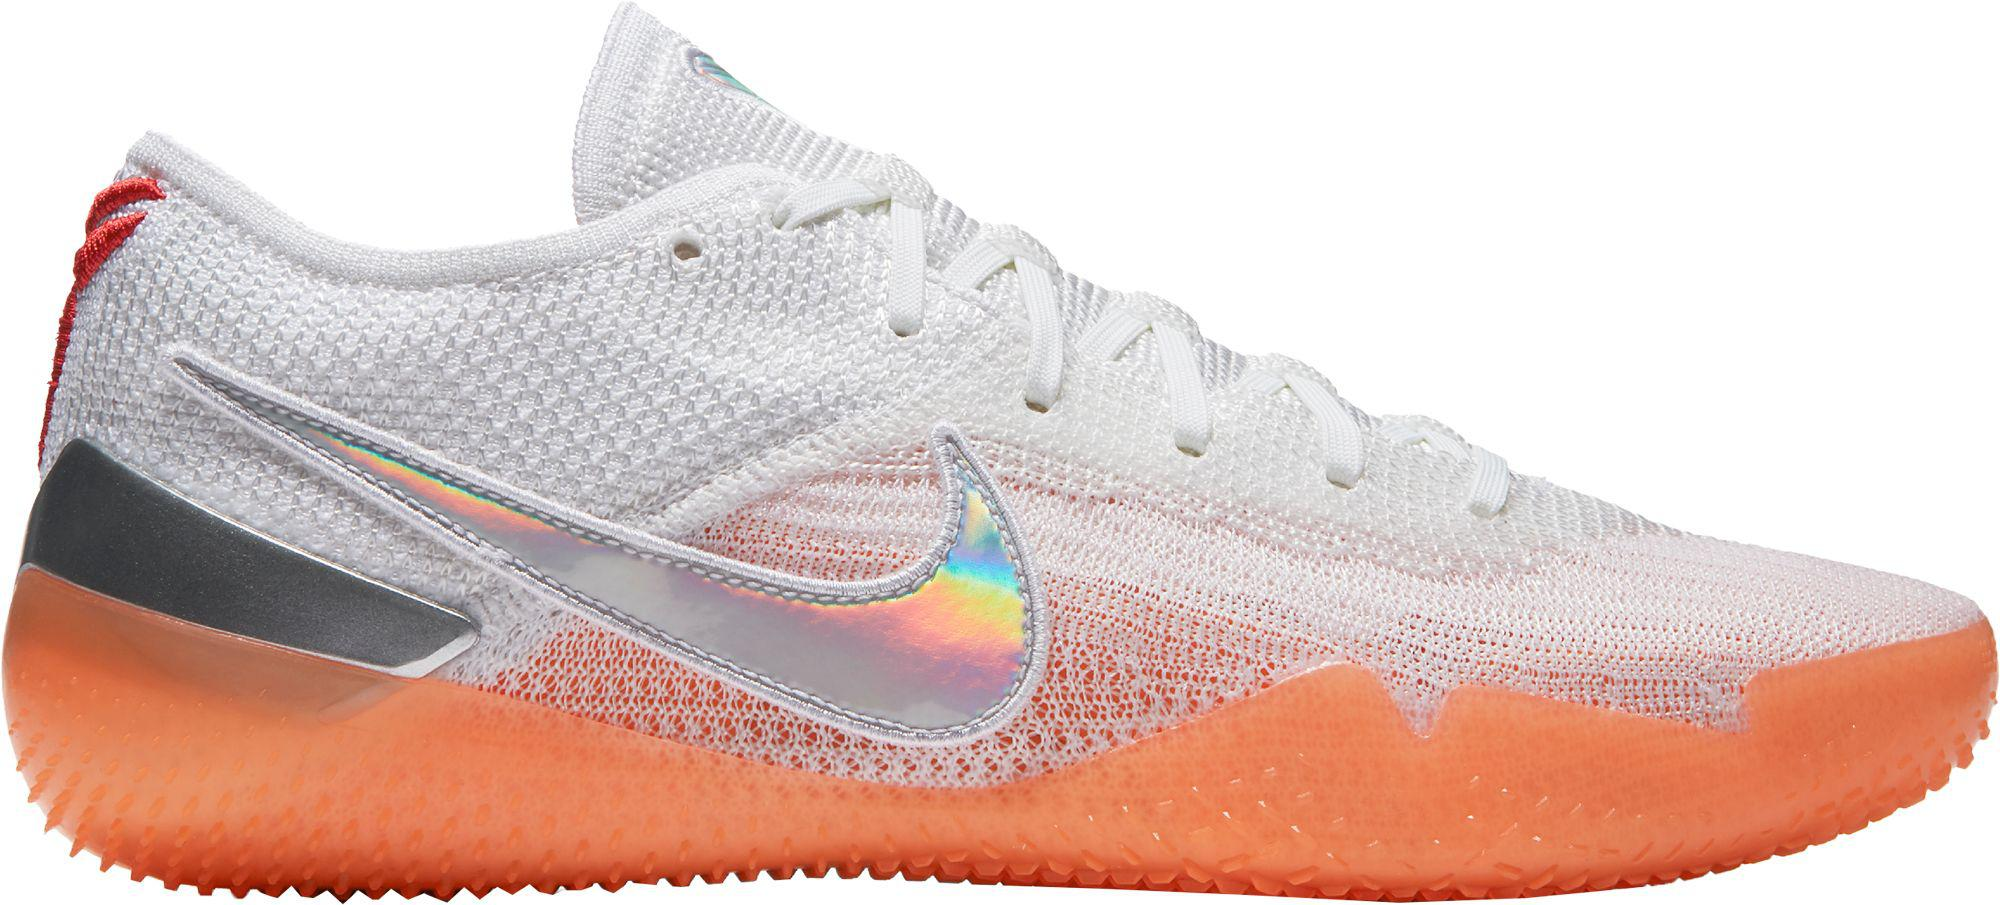 9c1238e778 ... coupon code for nike white kobe a.d. nxt 360 basketball shoes for men  lyst 74d15 0b923